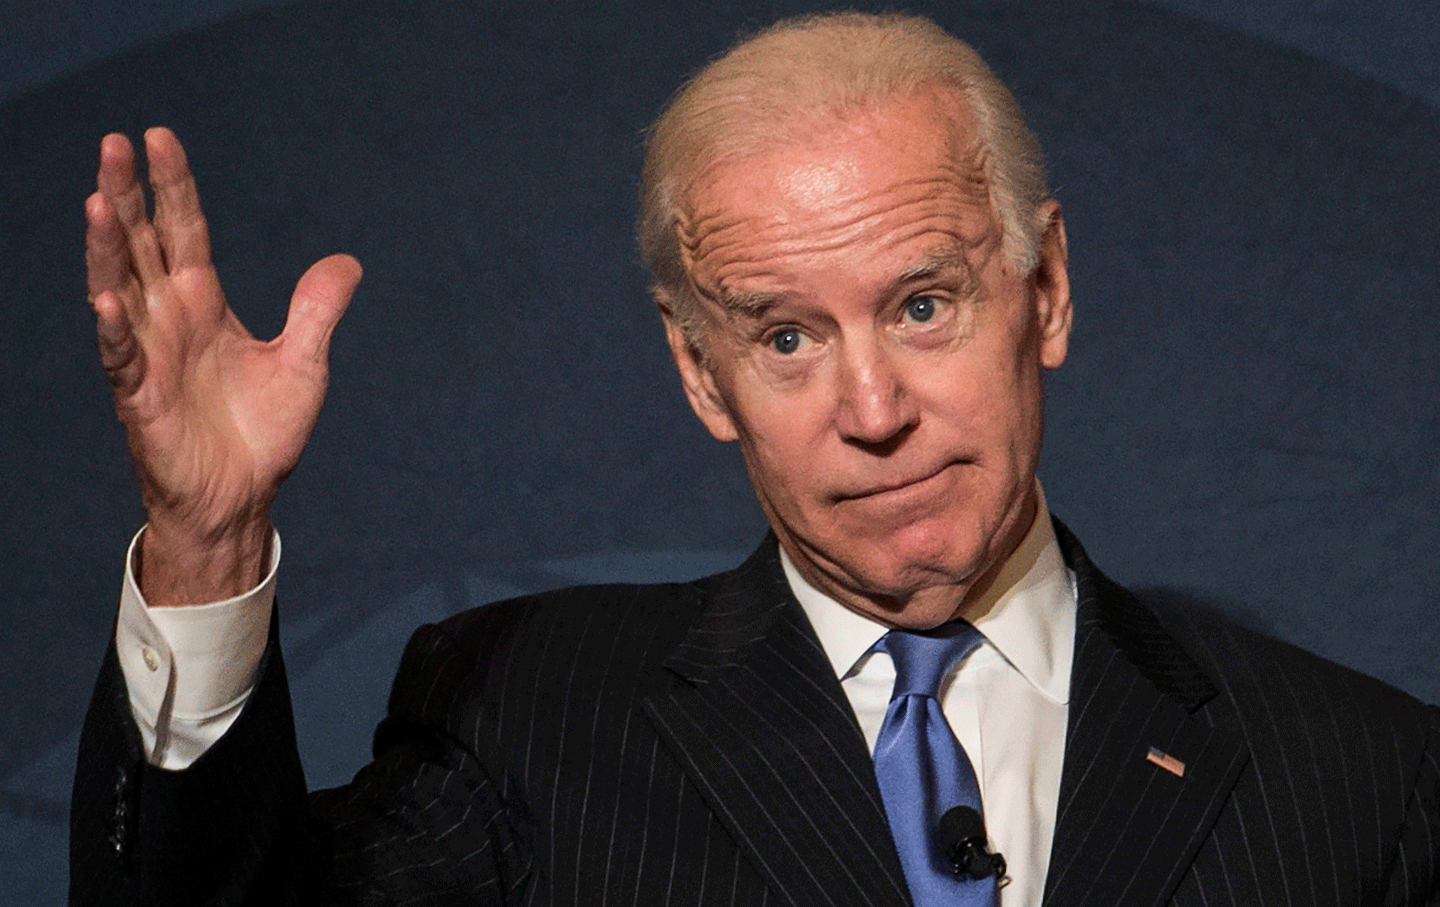 Joe-Biden-Chicago-ap-img.png